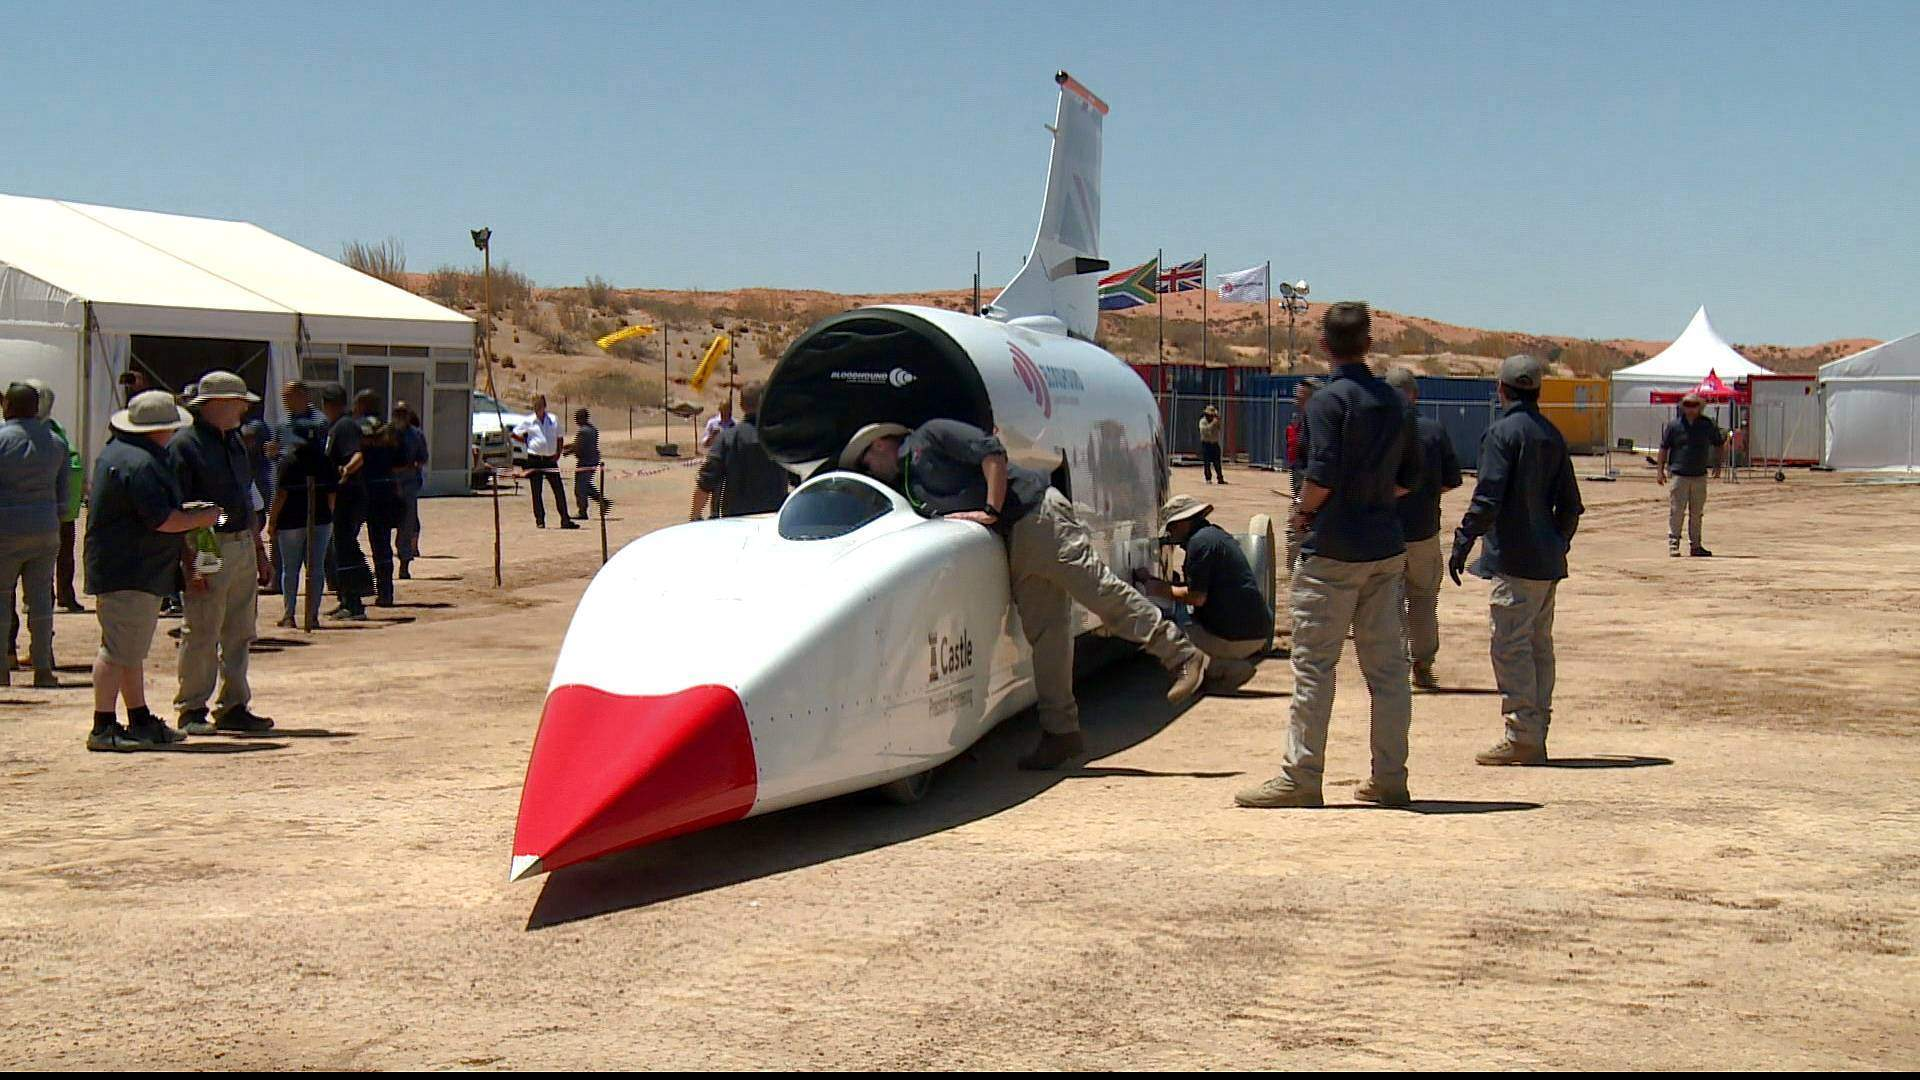 World's fastest car: Vehicle aims to break record by 2020